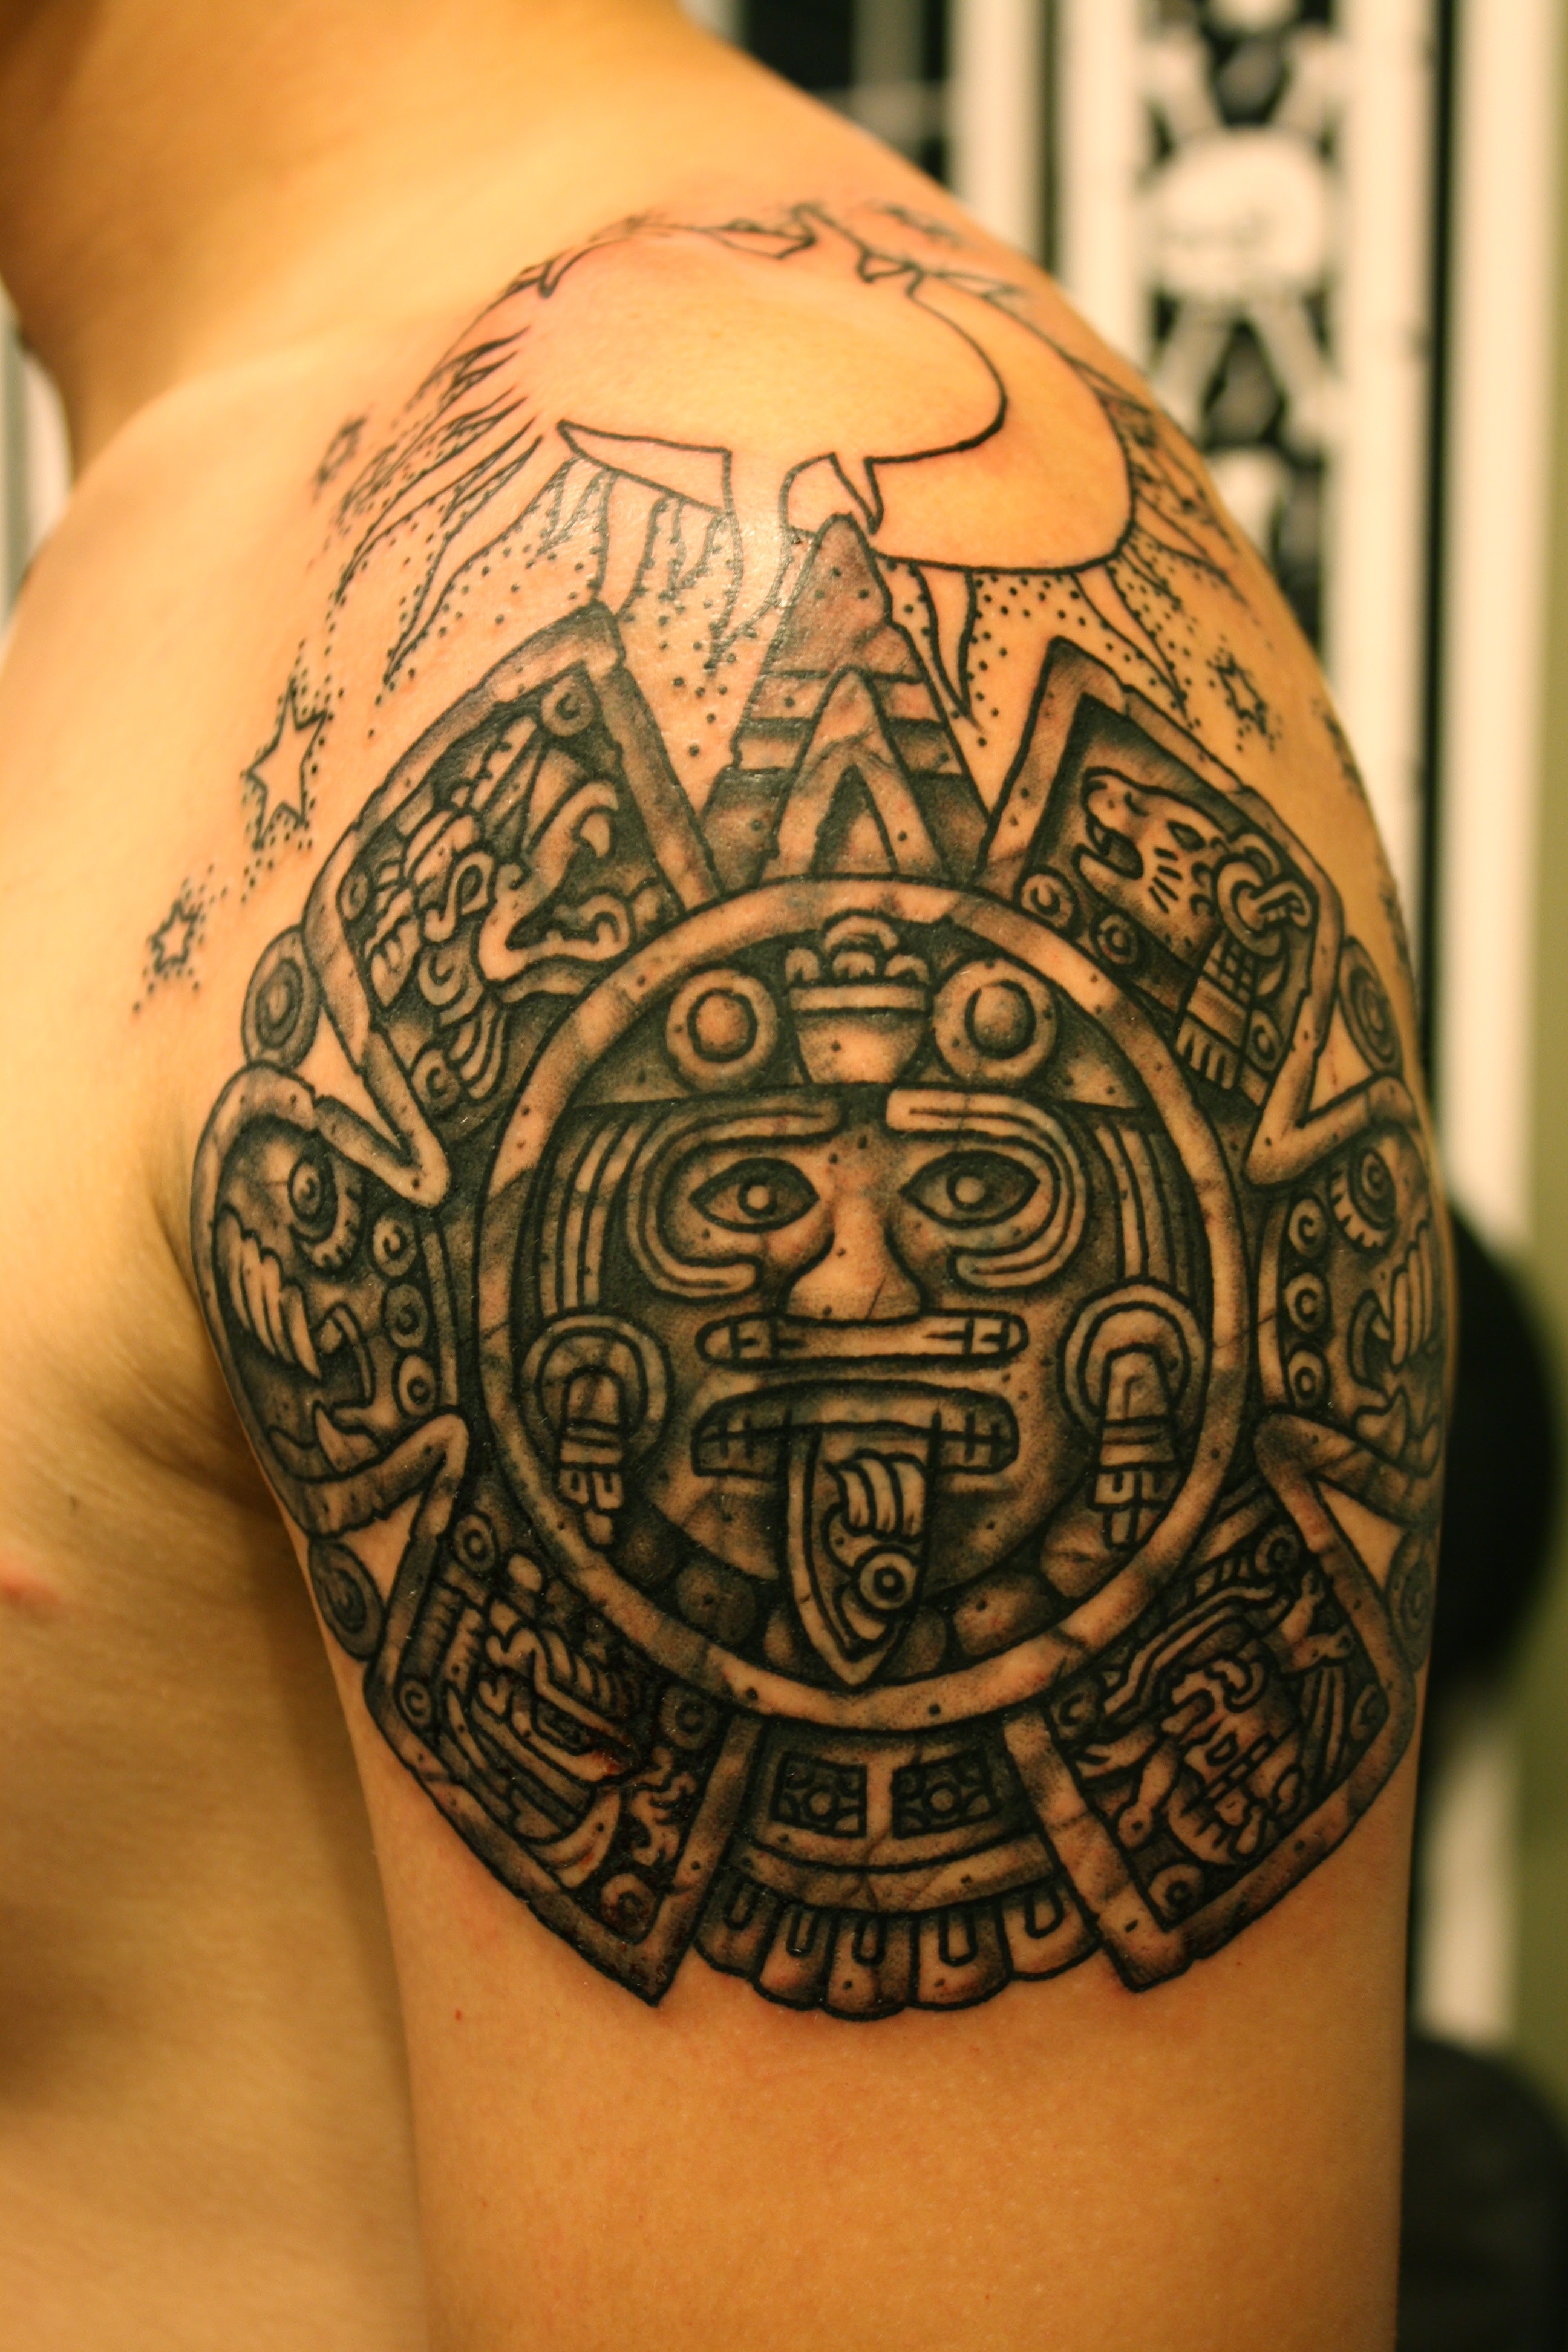 Aztec Tattoos Designs, Ideas and Meaning | Tattoos For You